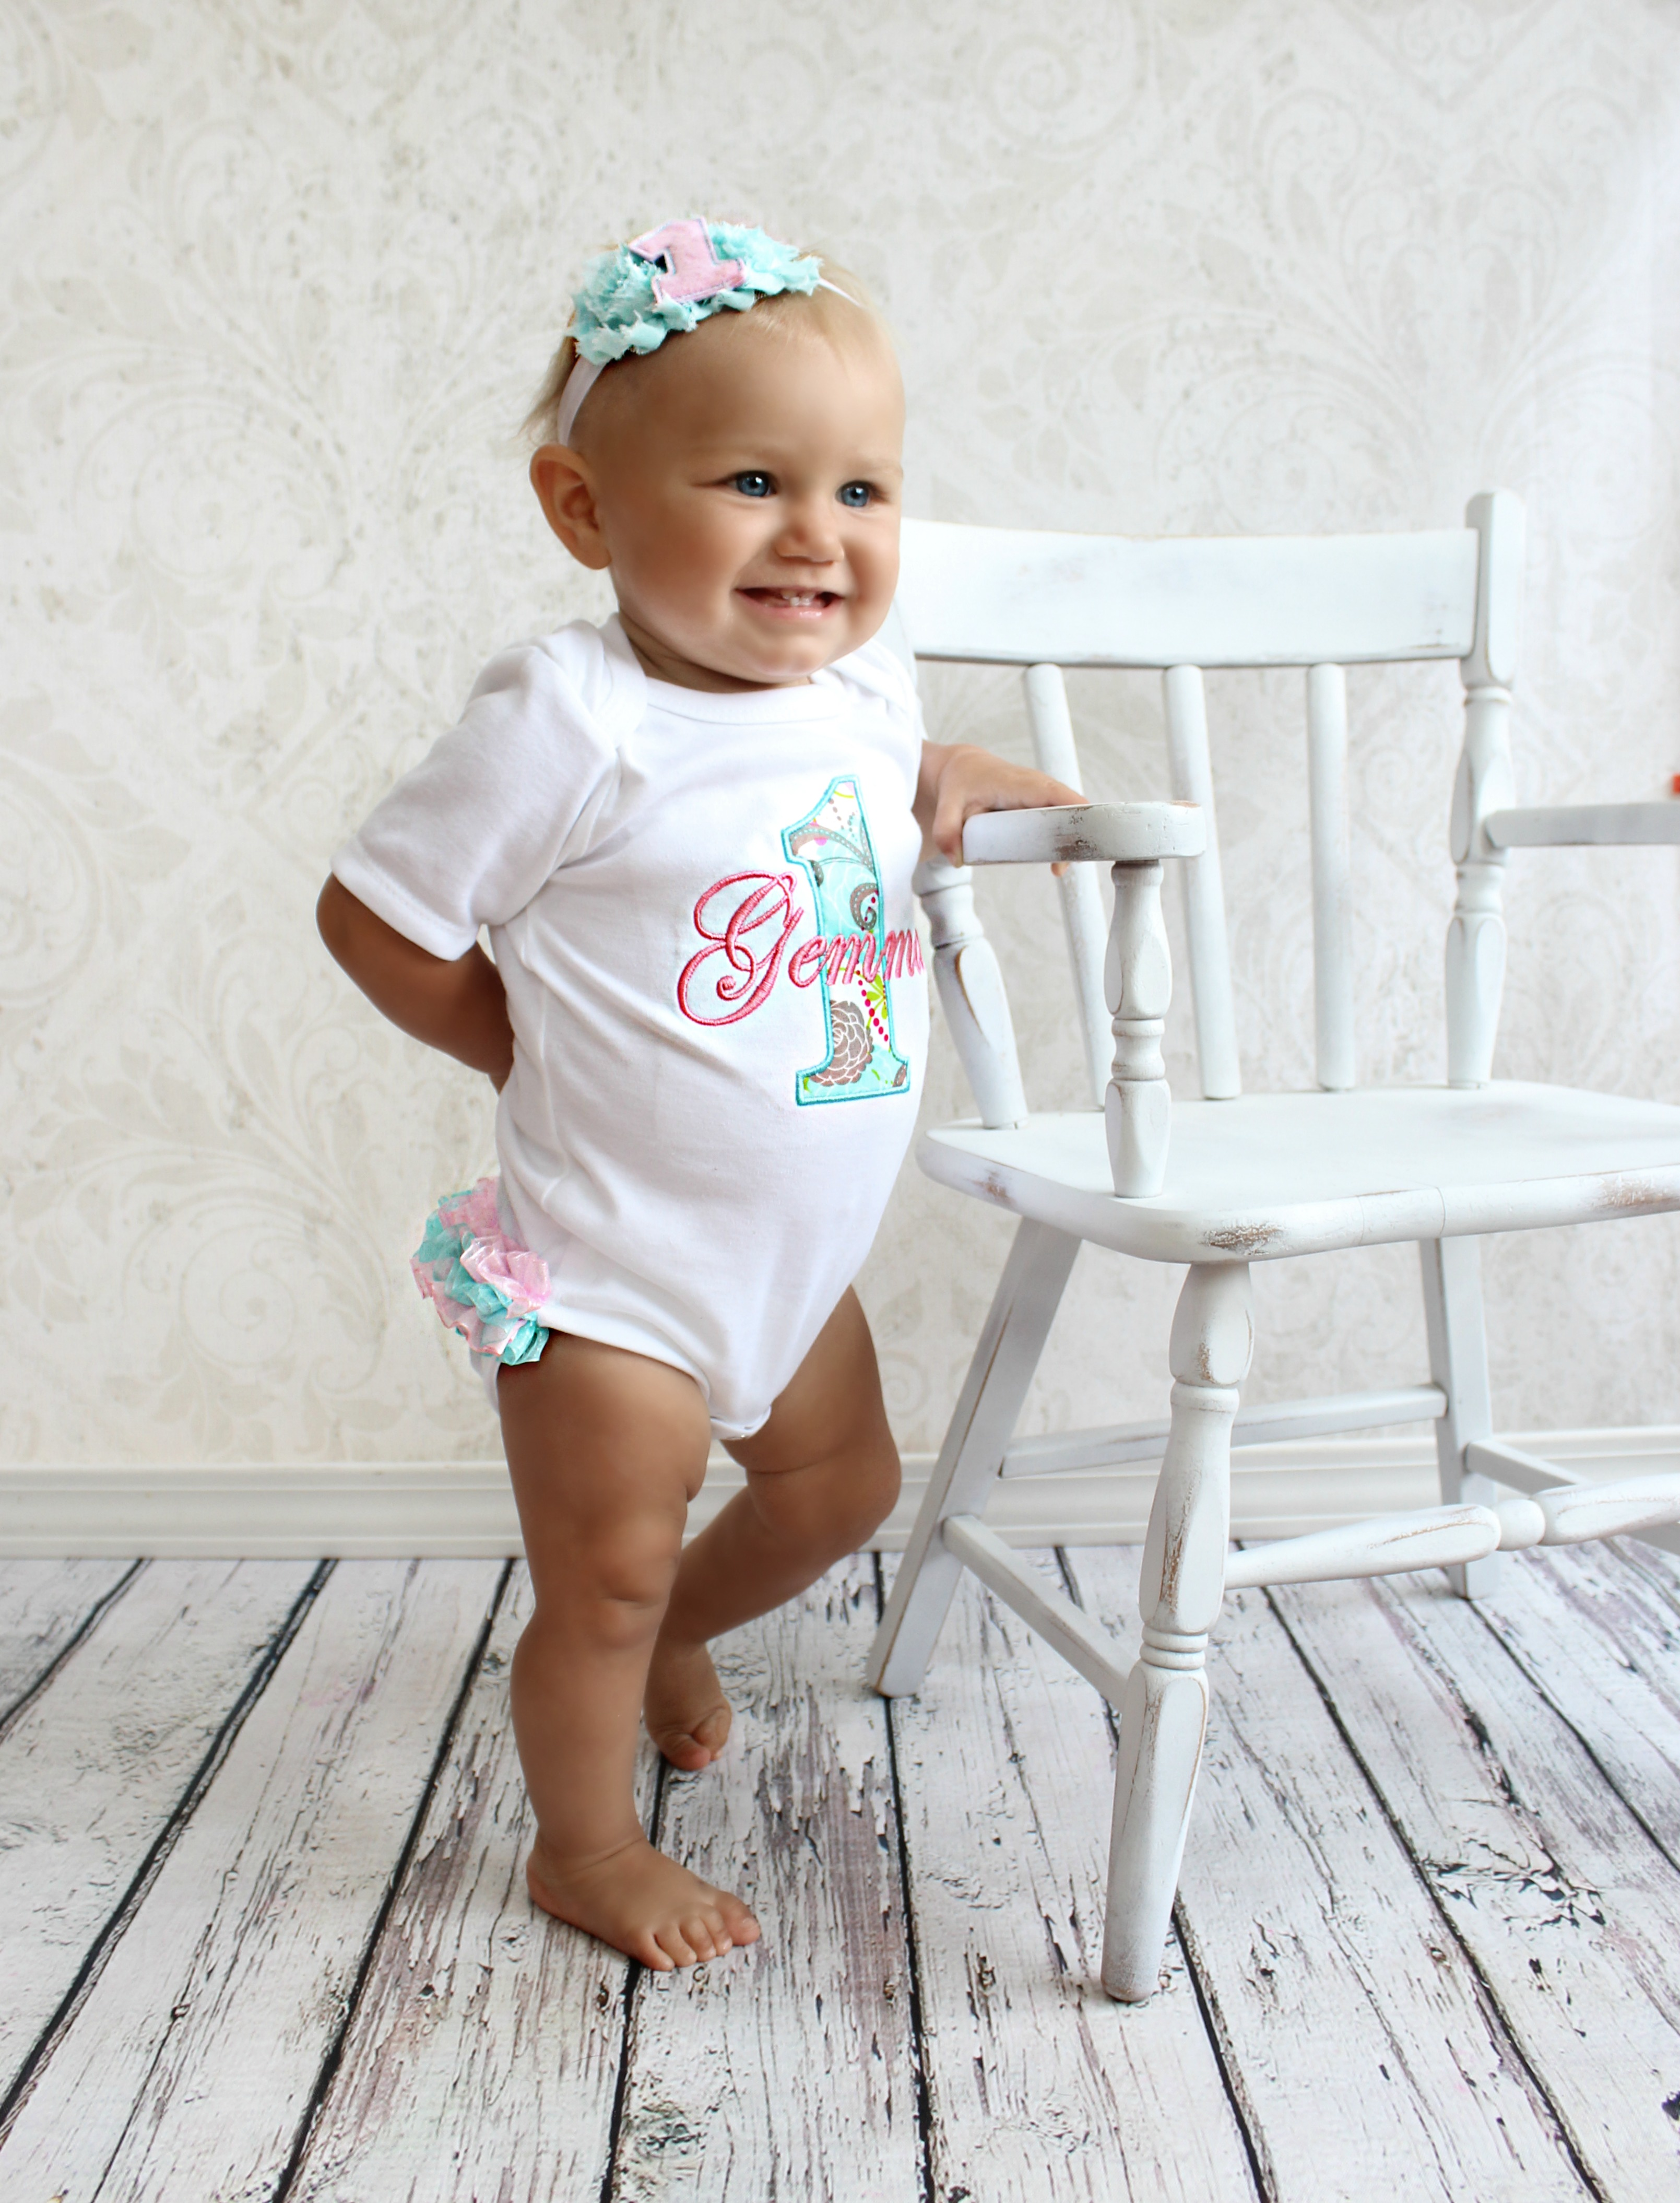 Baby Girl First Birthday Outfit   Ruffle Bottom Teal and Pink a1659acf7f